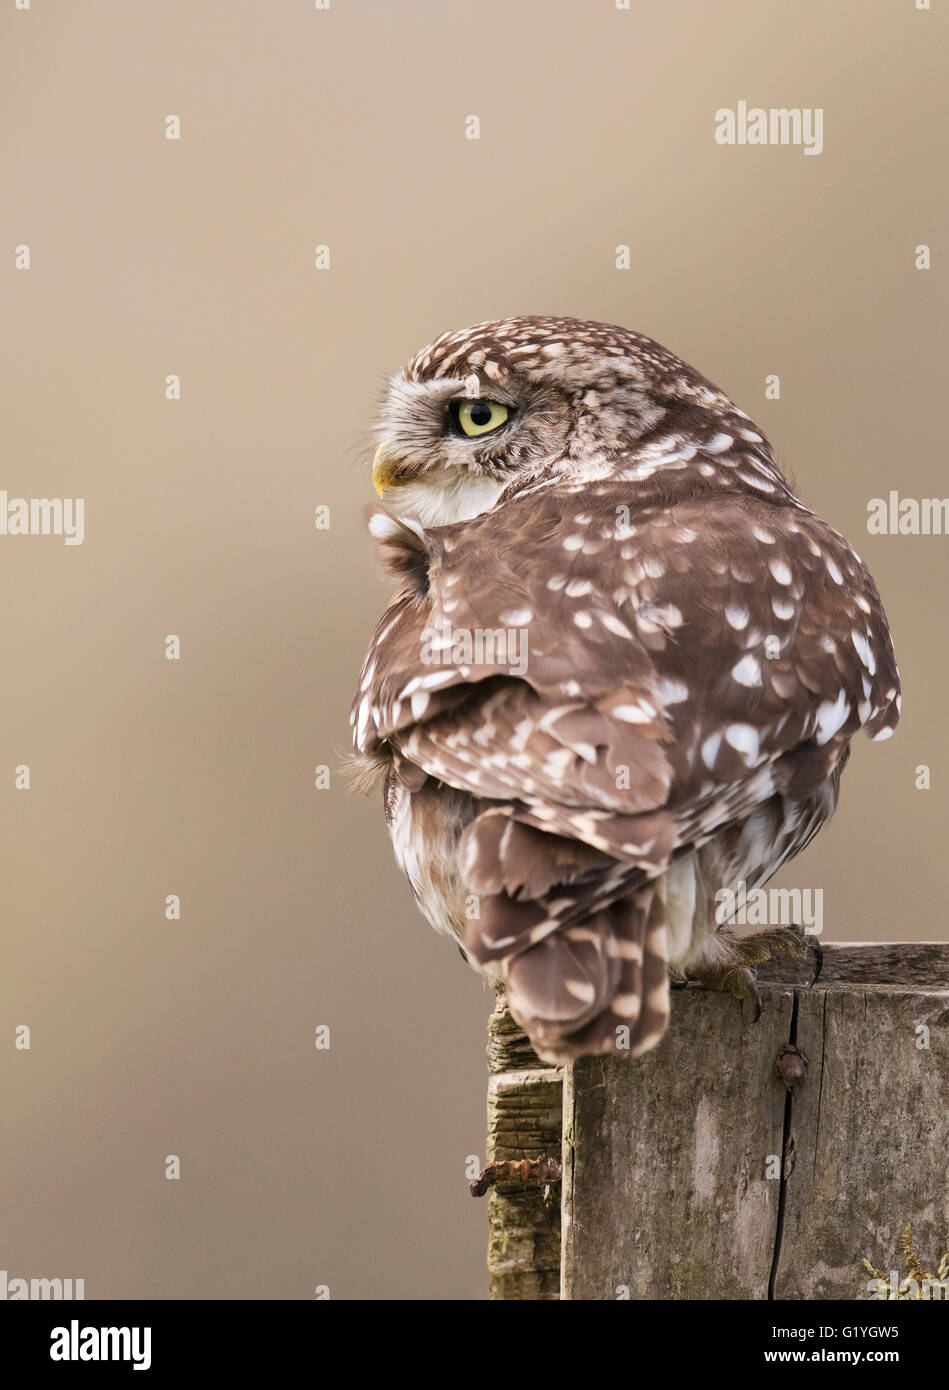 Wild adult Little Owl (Athene noctua) perched on wooden fence post - Stock Image